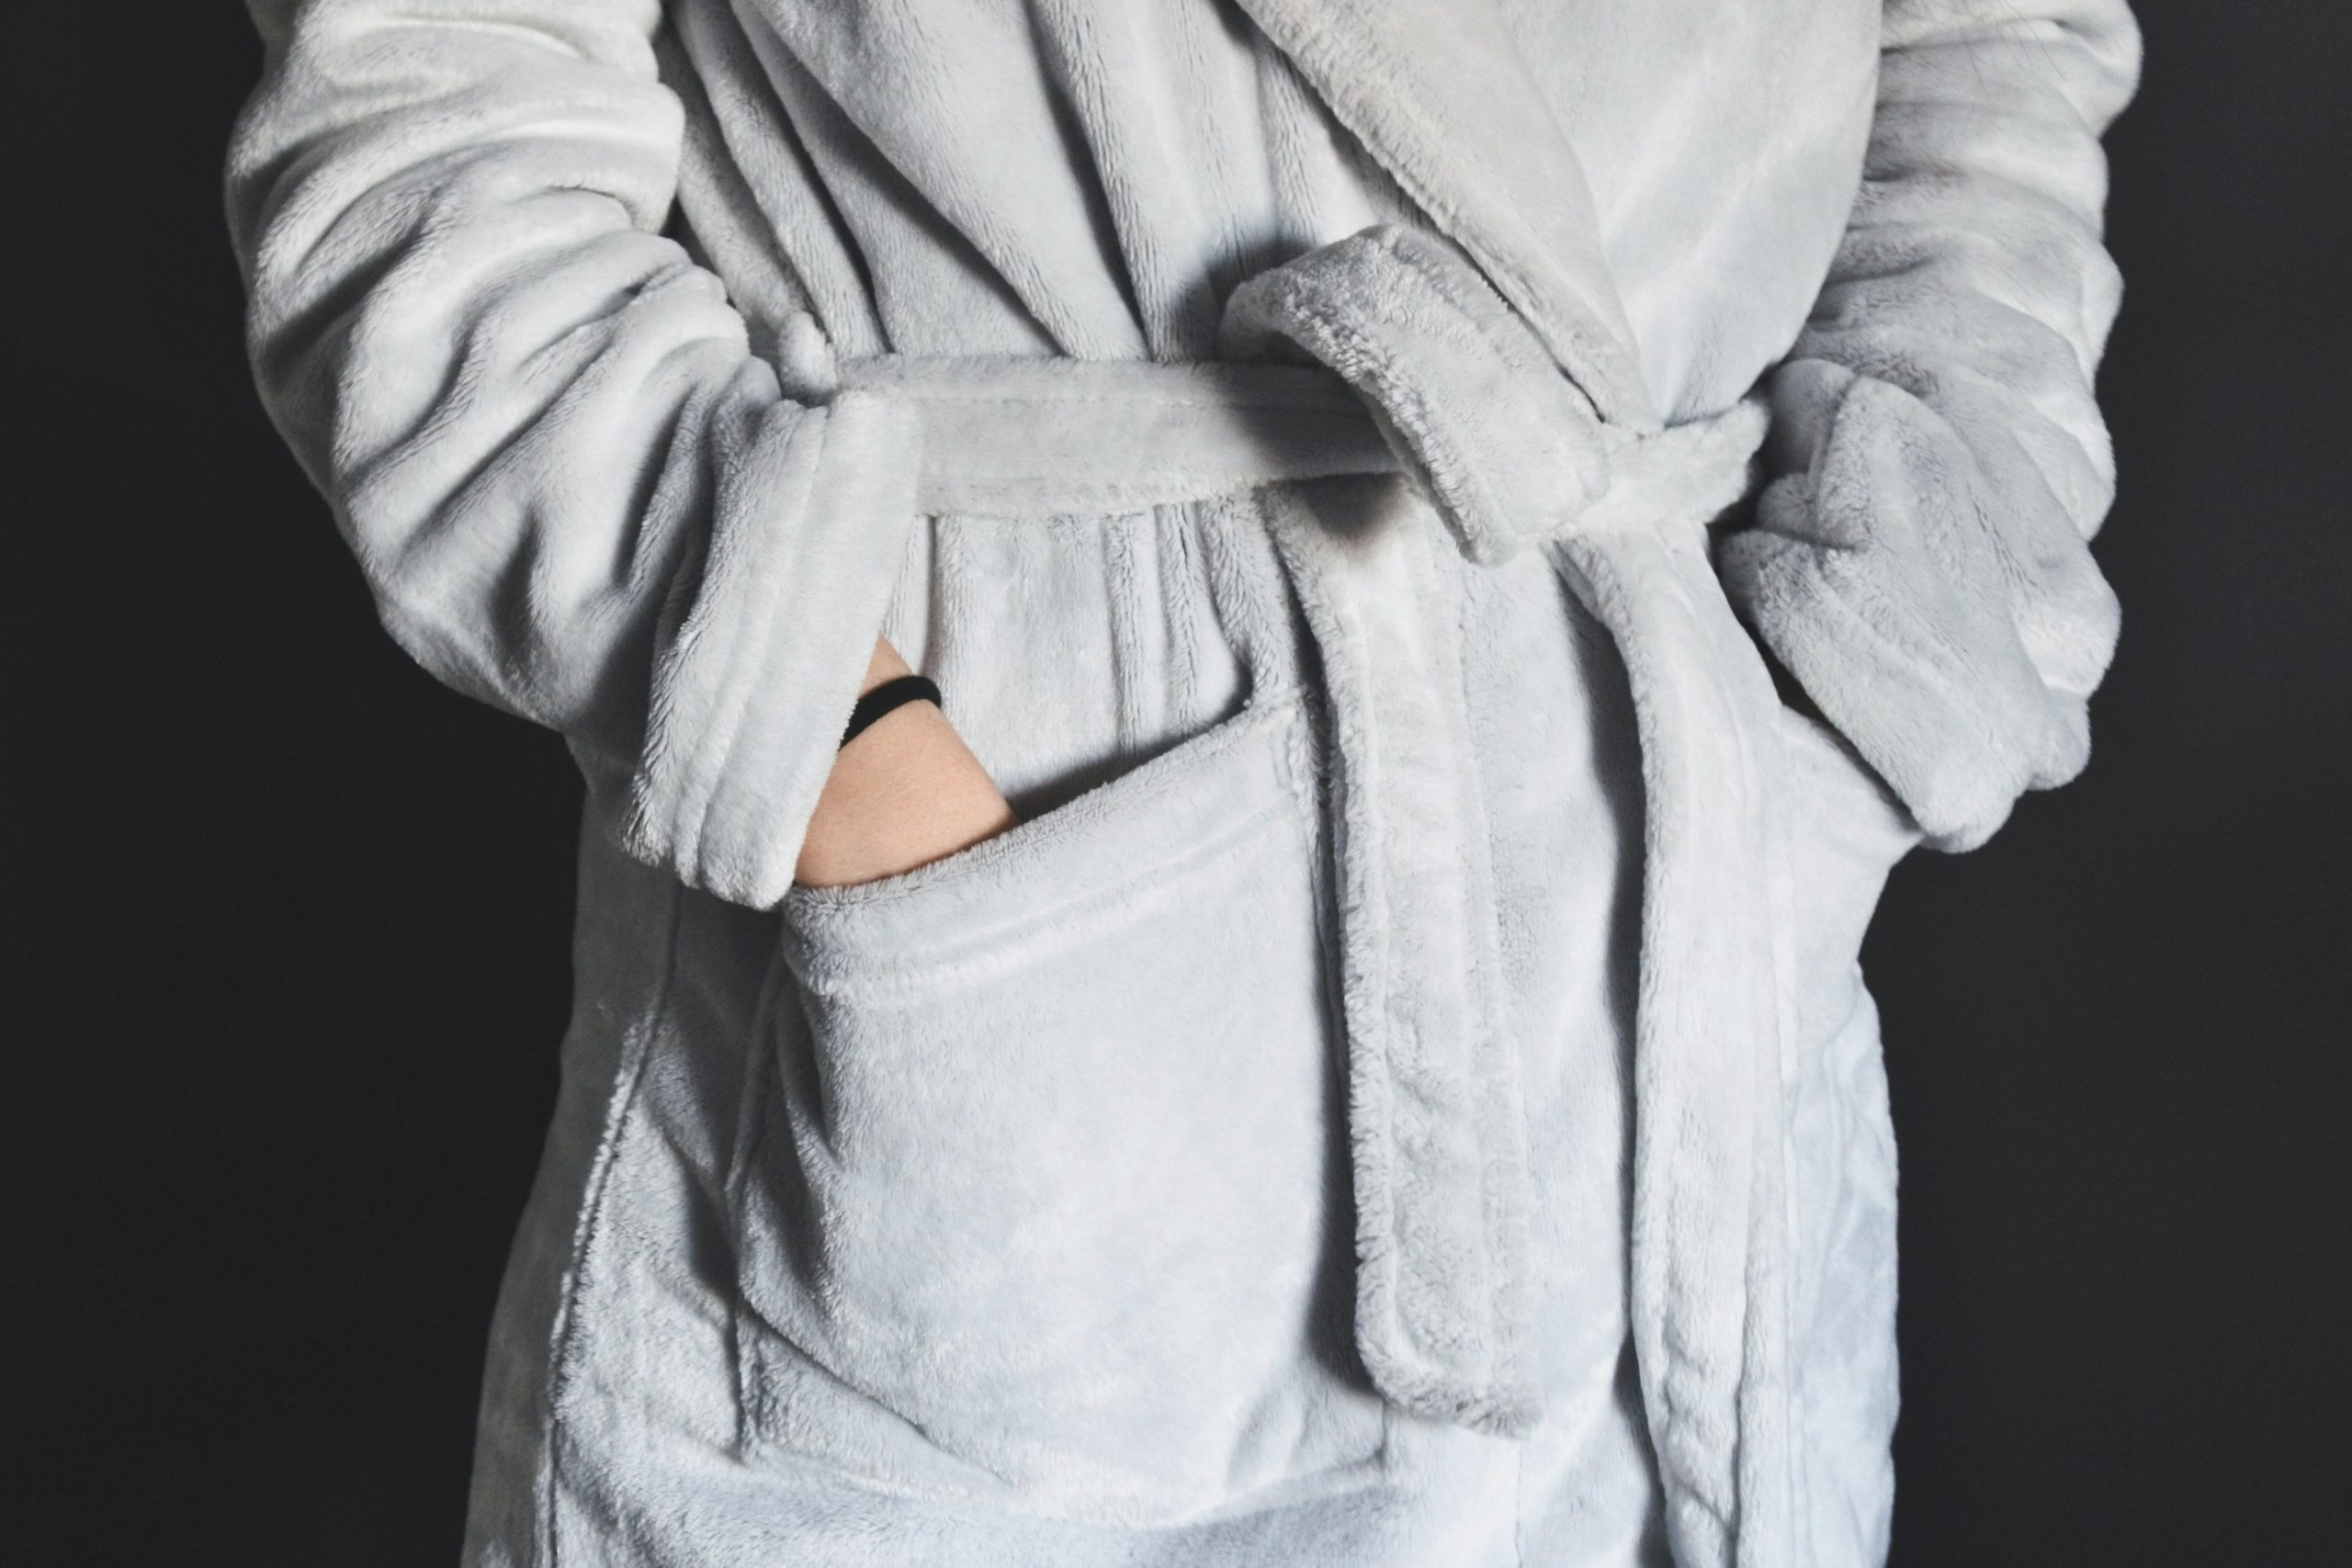 10 Best Robes for Women to Stay Cozy and Warm in 2021